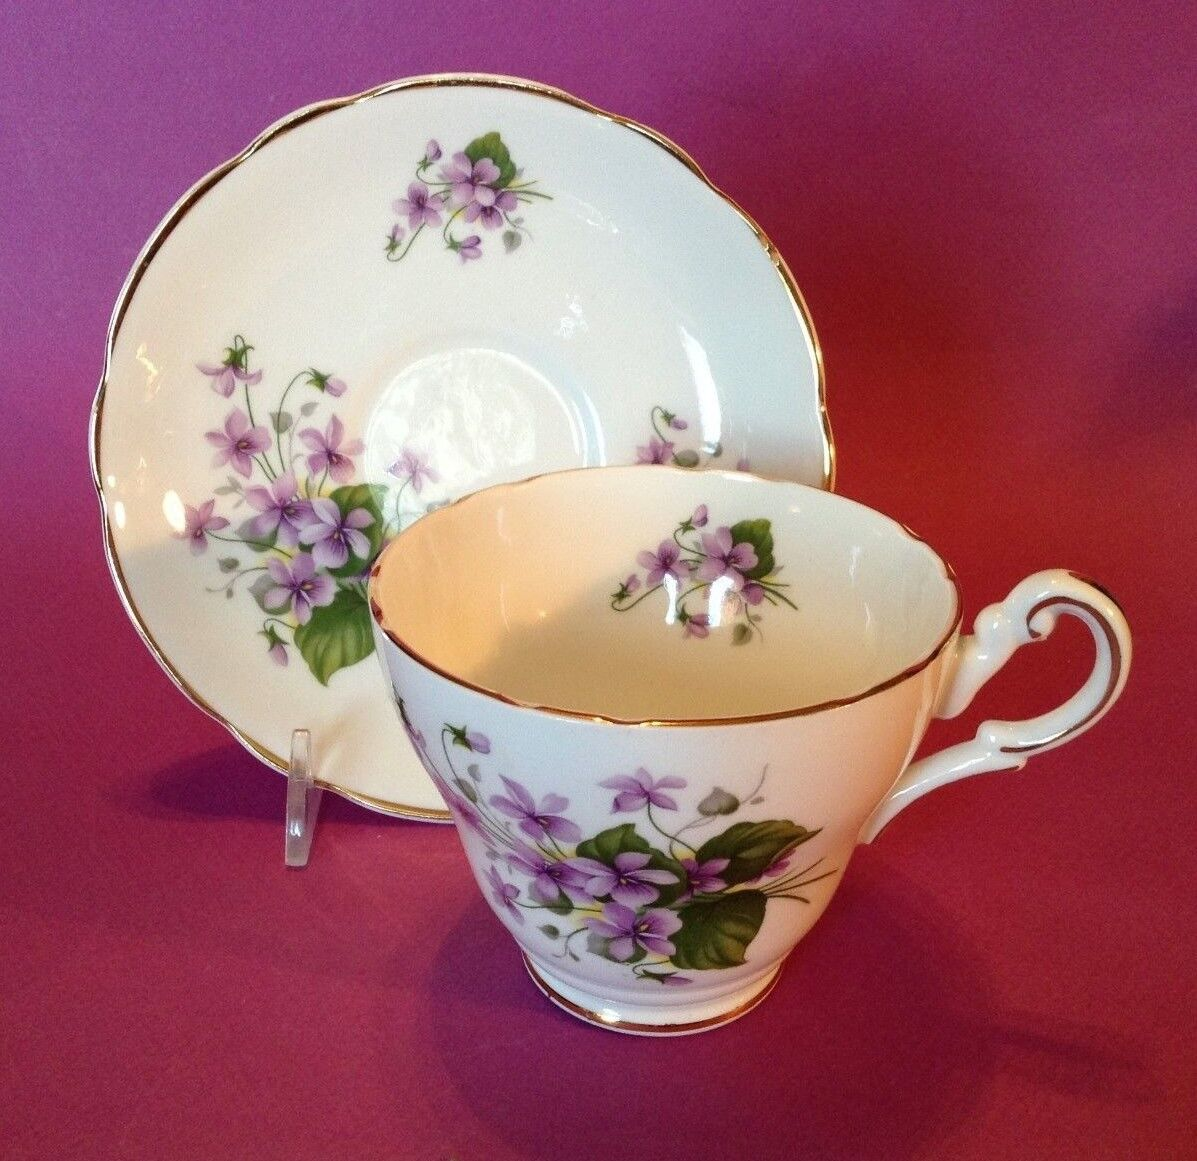 Regency TeaCup And Saucer - Scalloped Rims - White With Purple Violets England  - $22.95